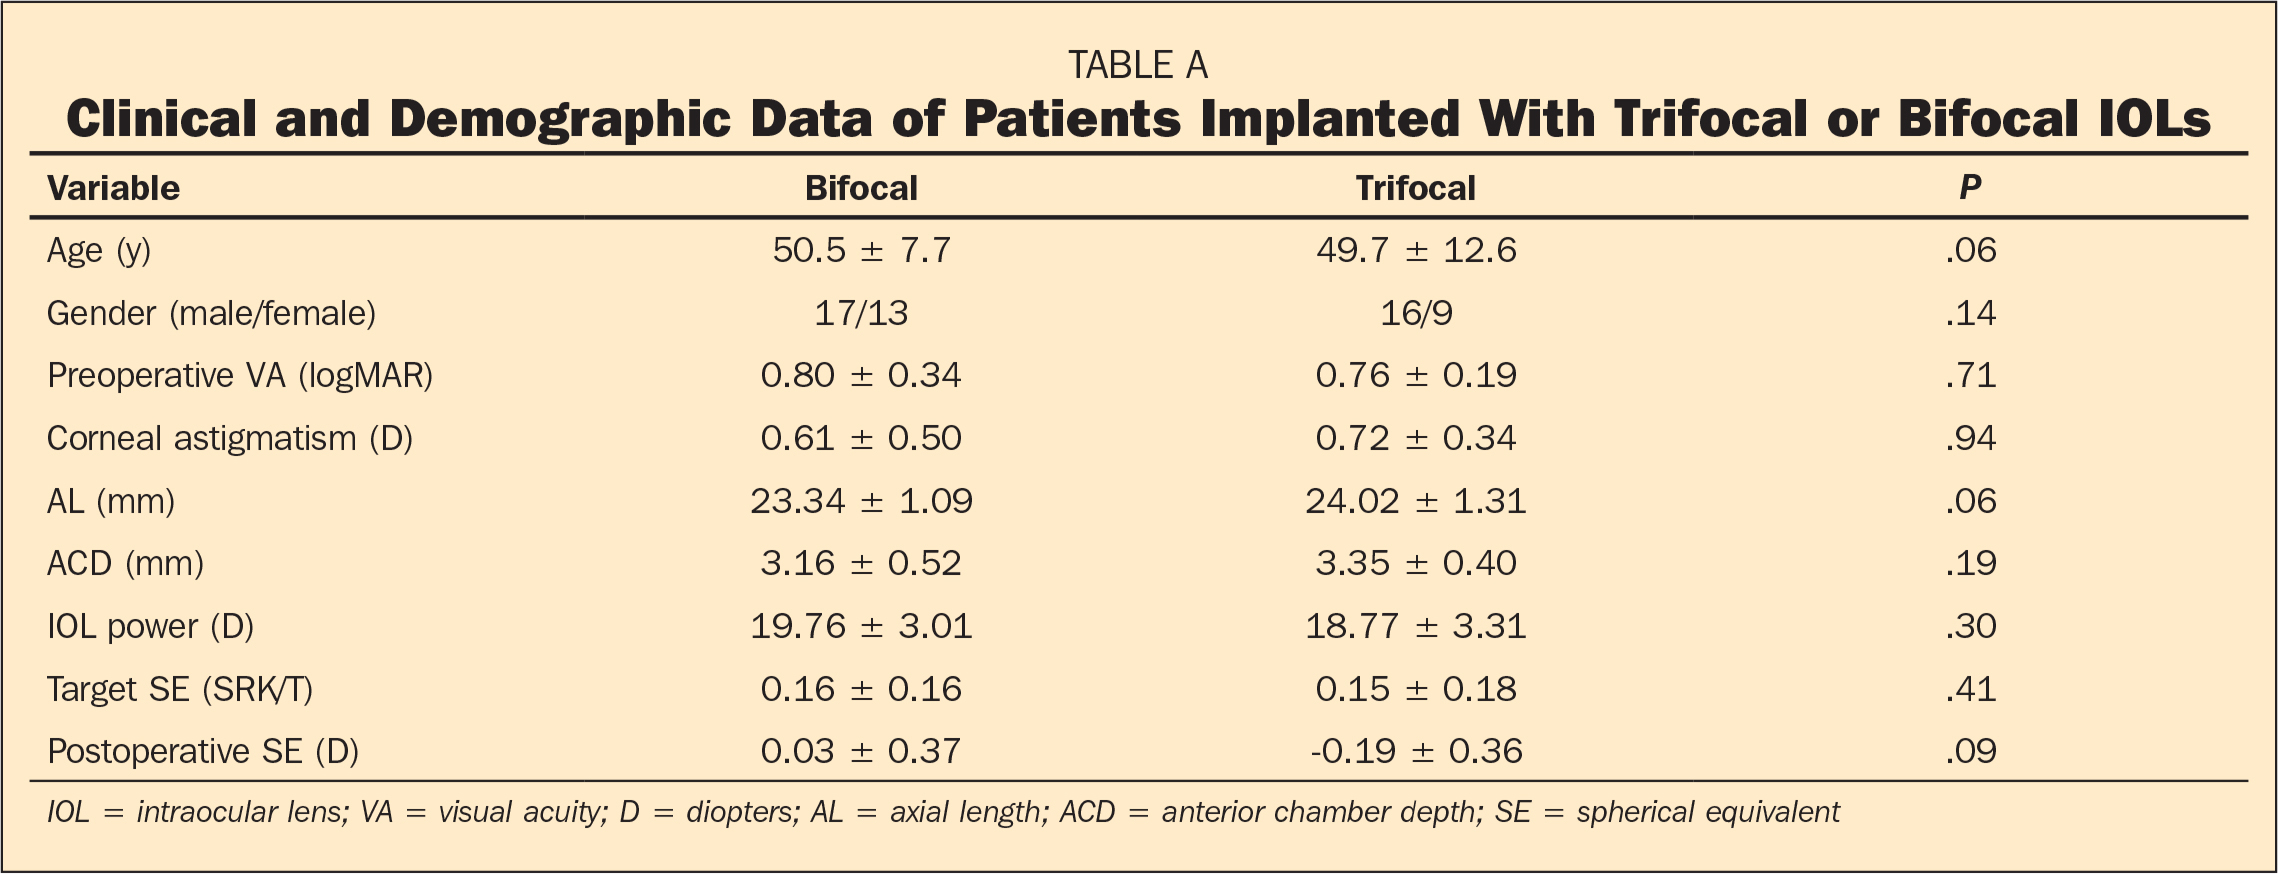 Clinical and Demographic Data of Patients Implanted With Trifocal or Bifocal IOLs